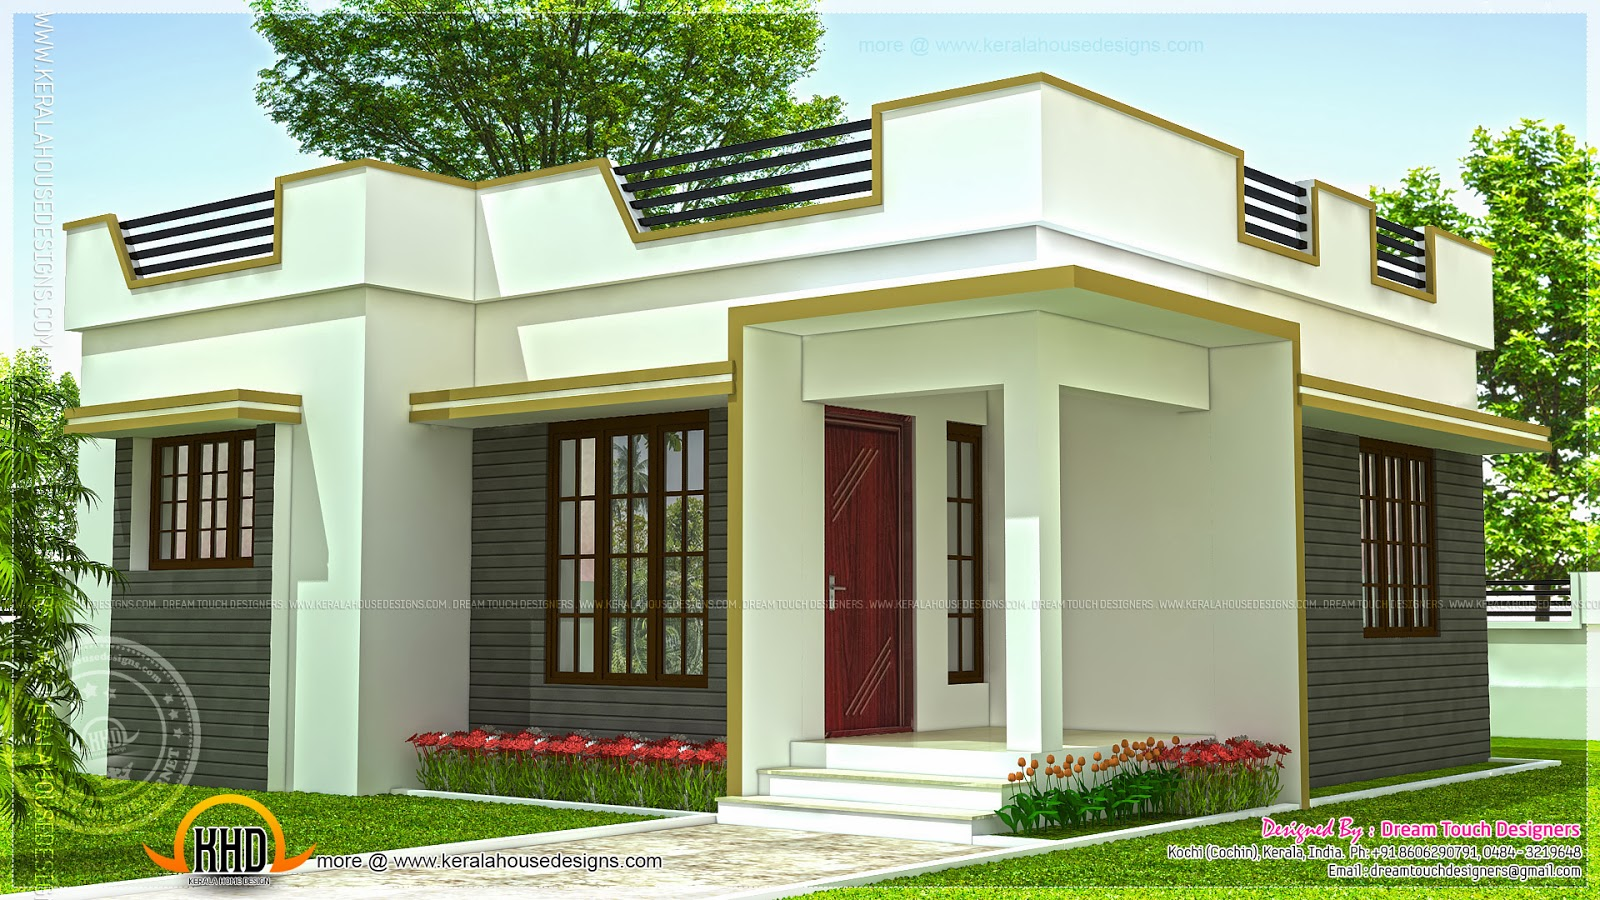 Thoughtskoto for Small house plan design